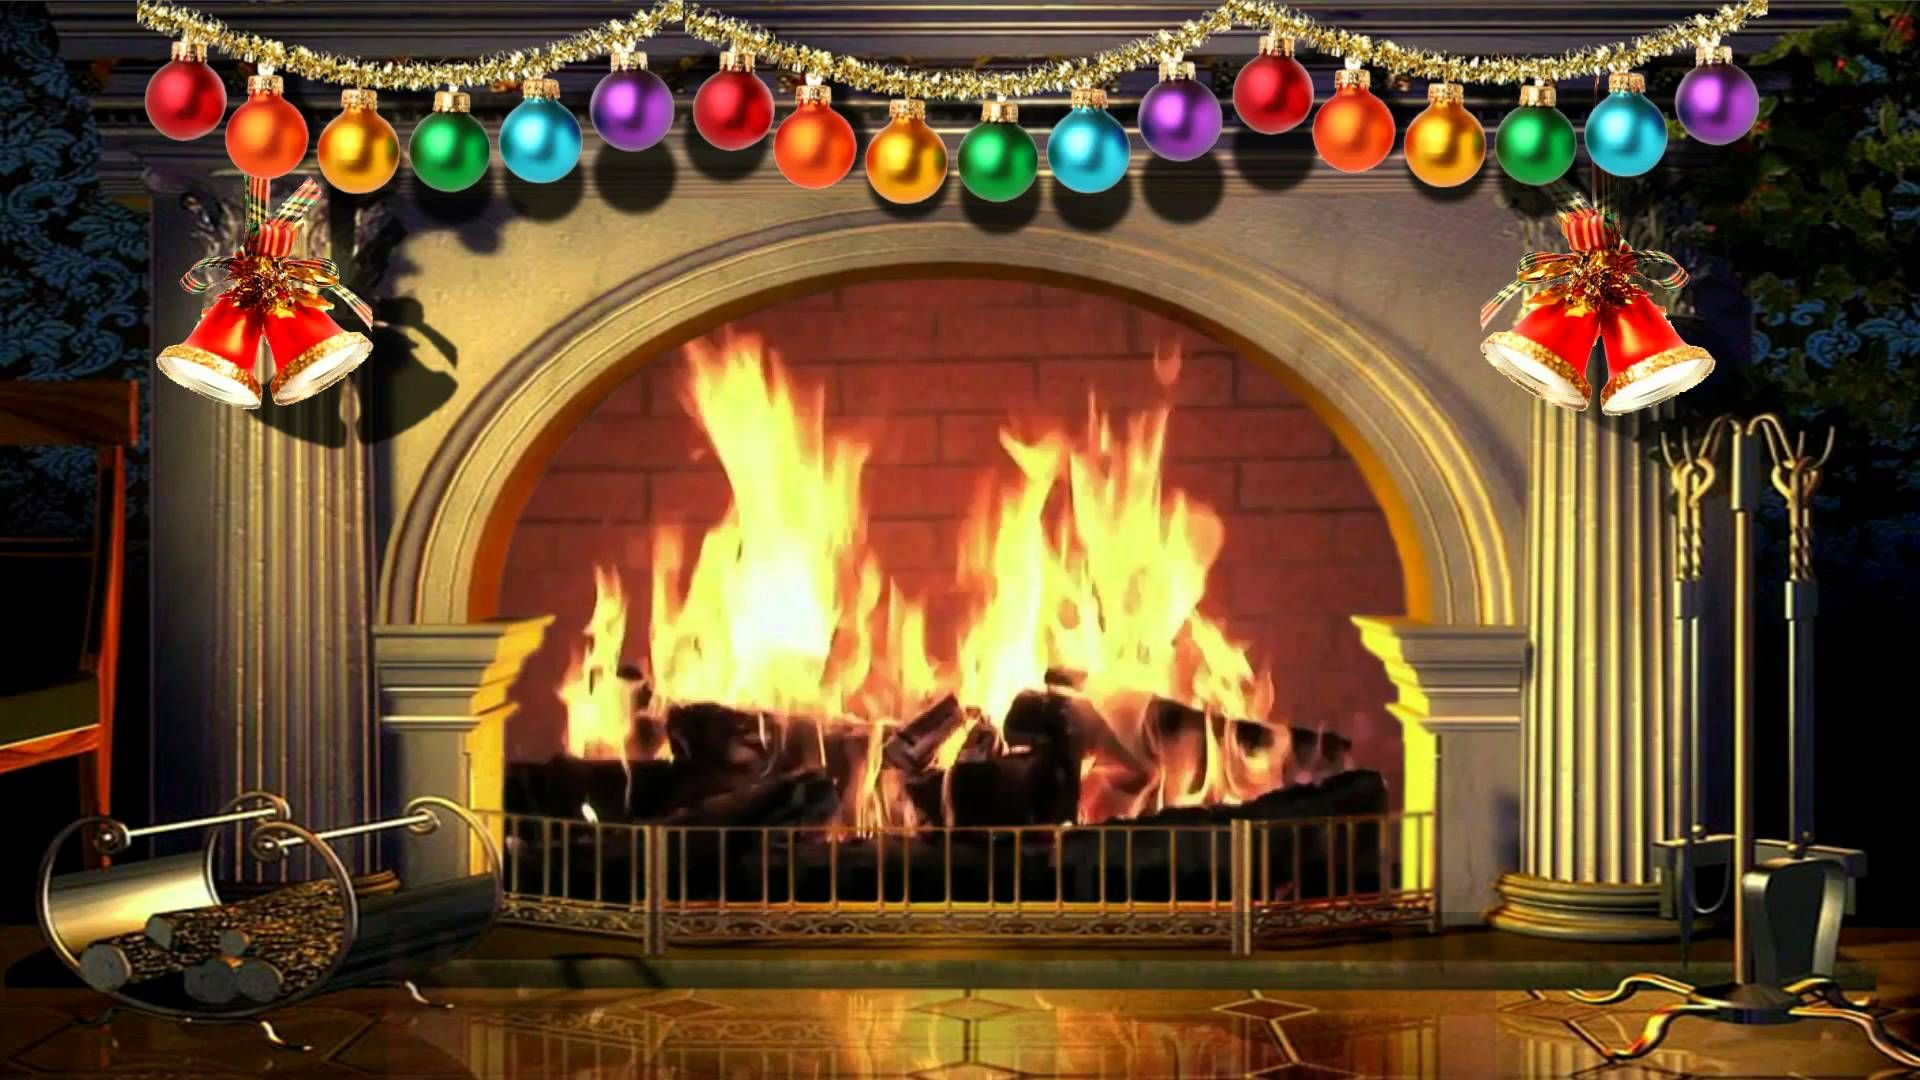 Christmas Scenes Fireplace Gif